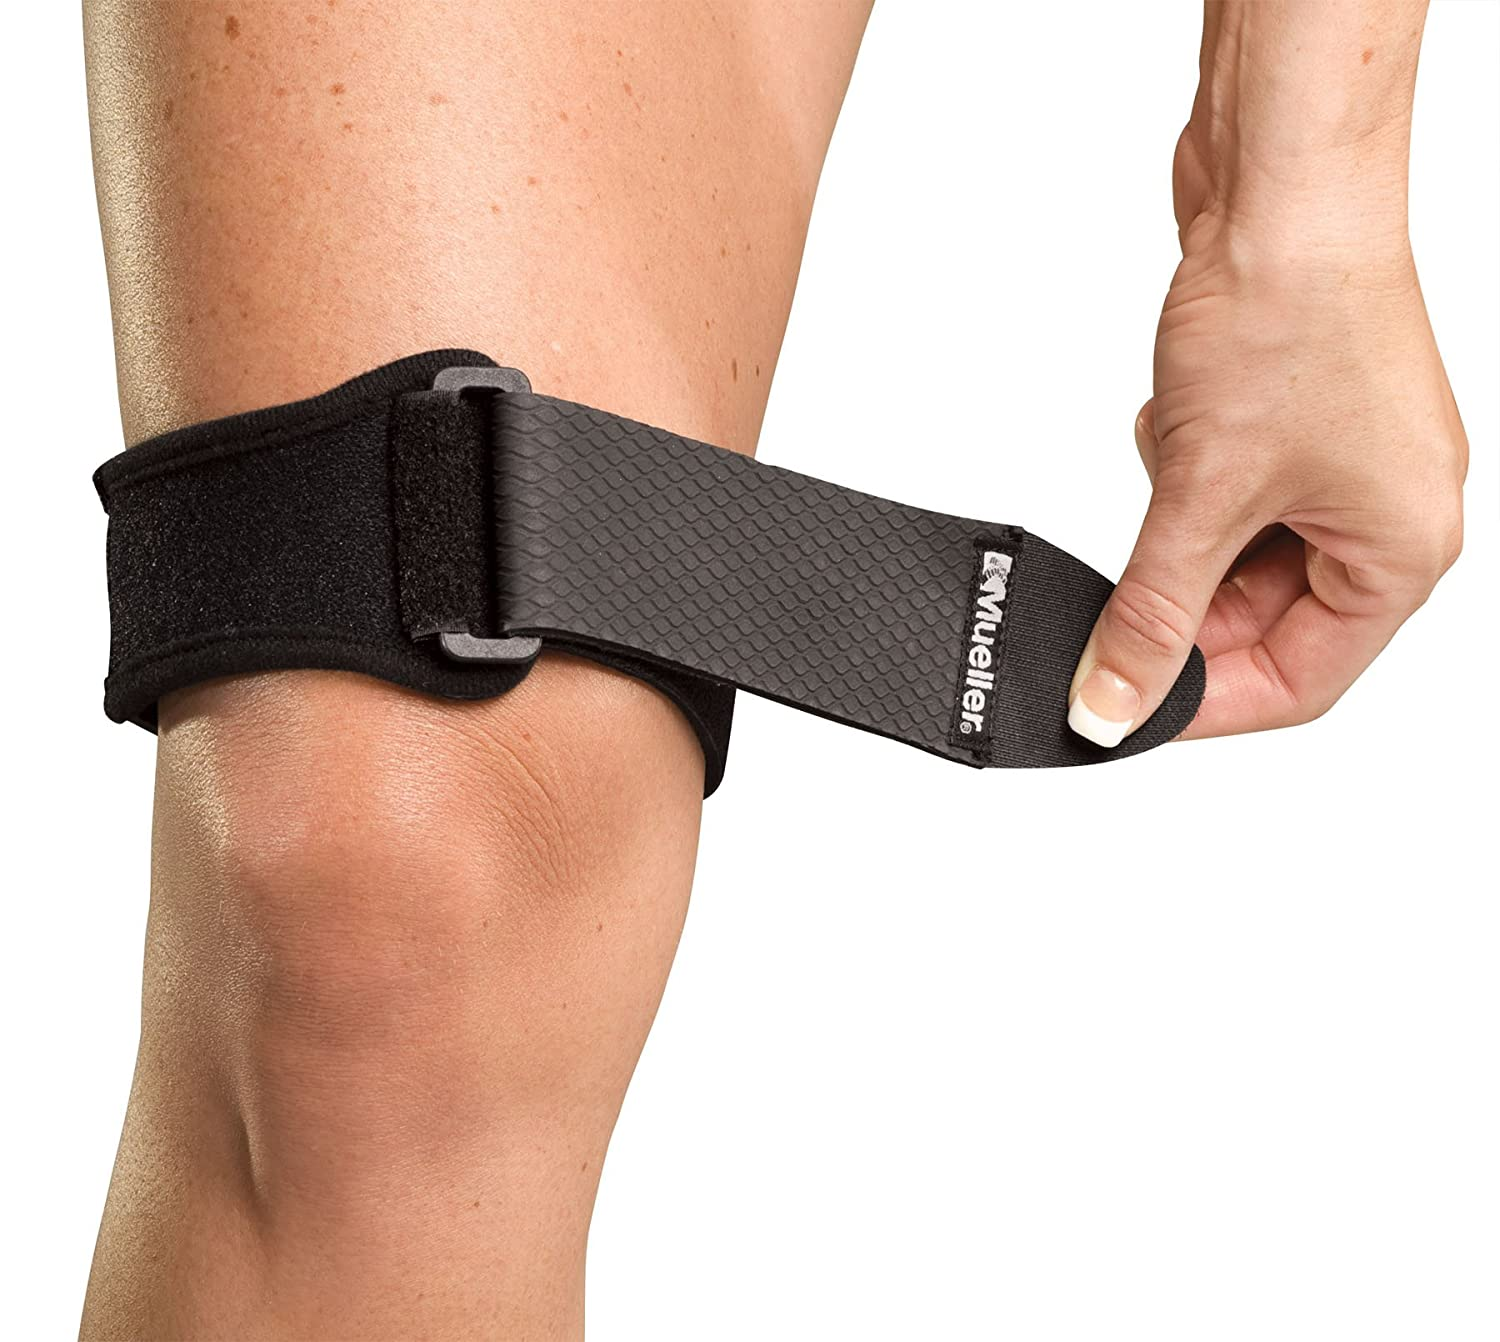 How to mueller wear max knee strap advise to wear for on every day in 2019